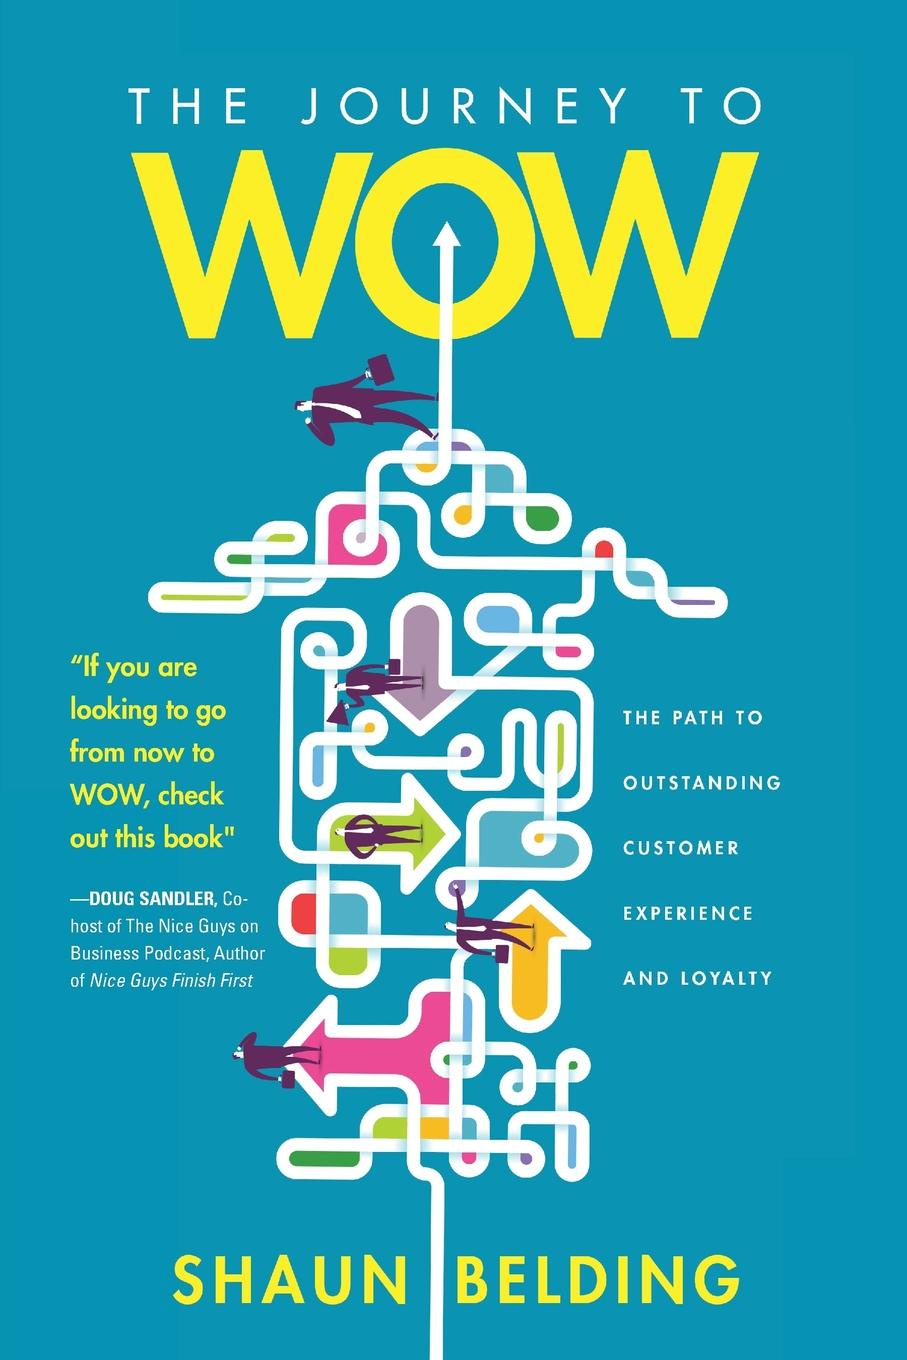 Shaun Belding The Journey to WOW. The Path to Outstanding Customer Experience and Loyalty andrew frawley igniting customer connections fire up your company s growth by multiplying customer experience and engagement